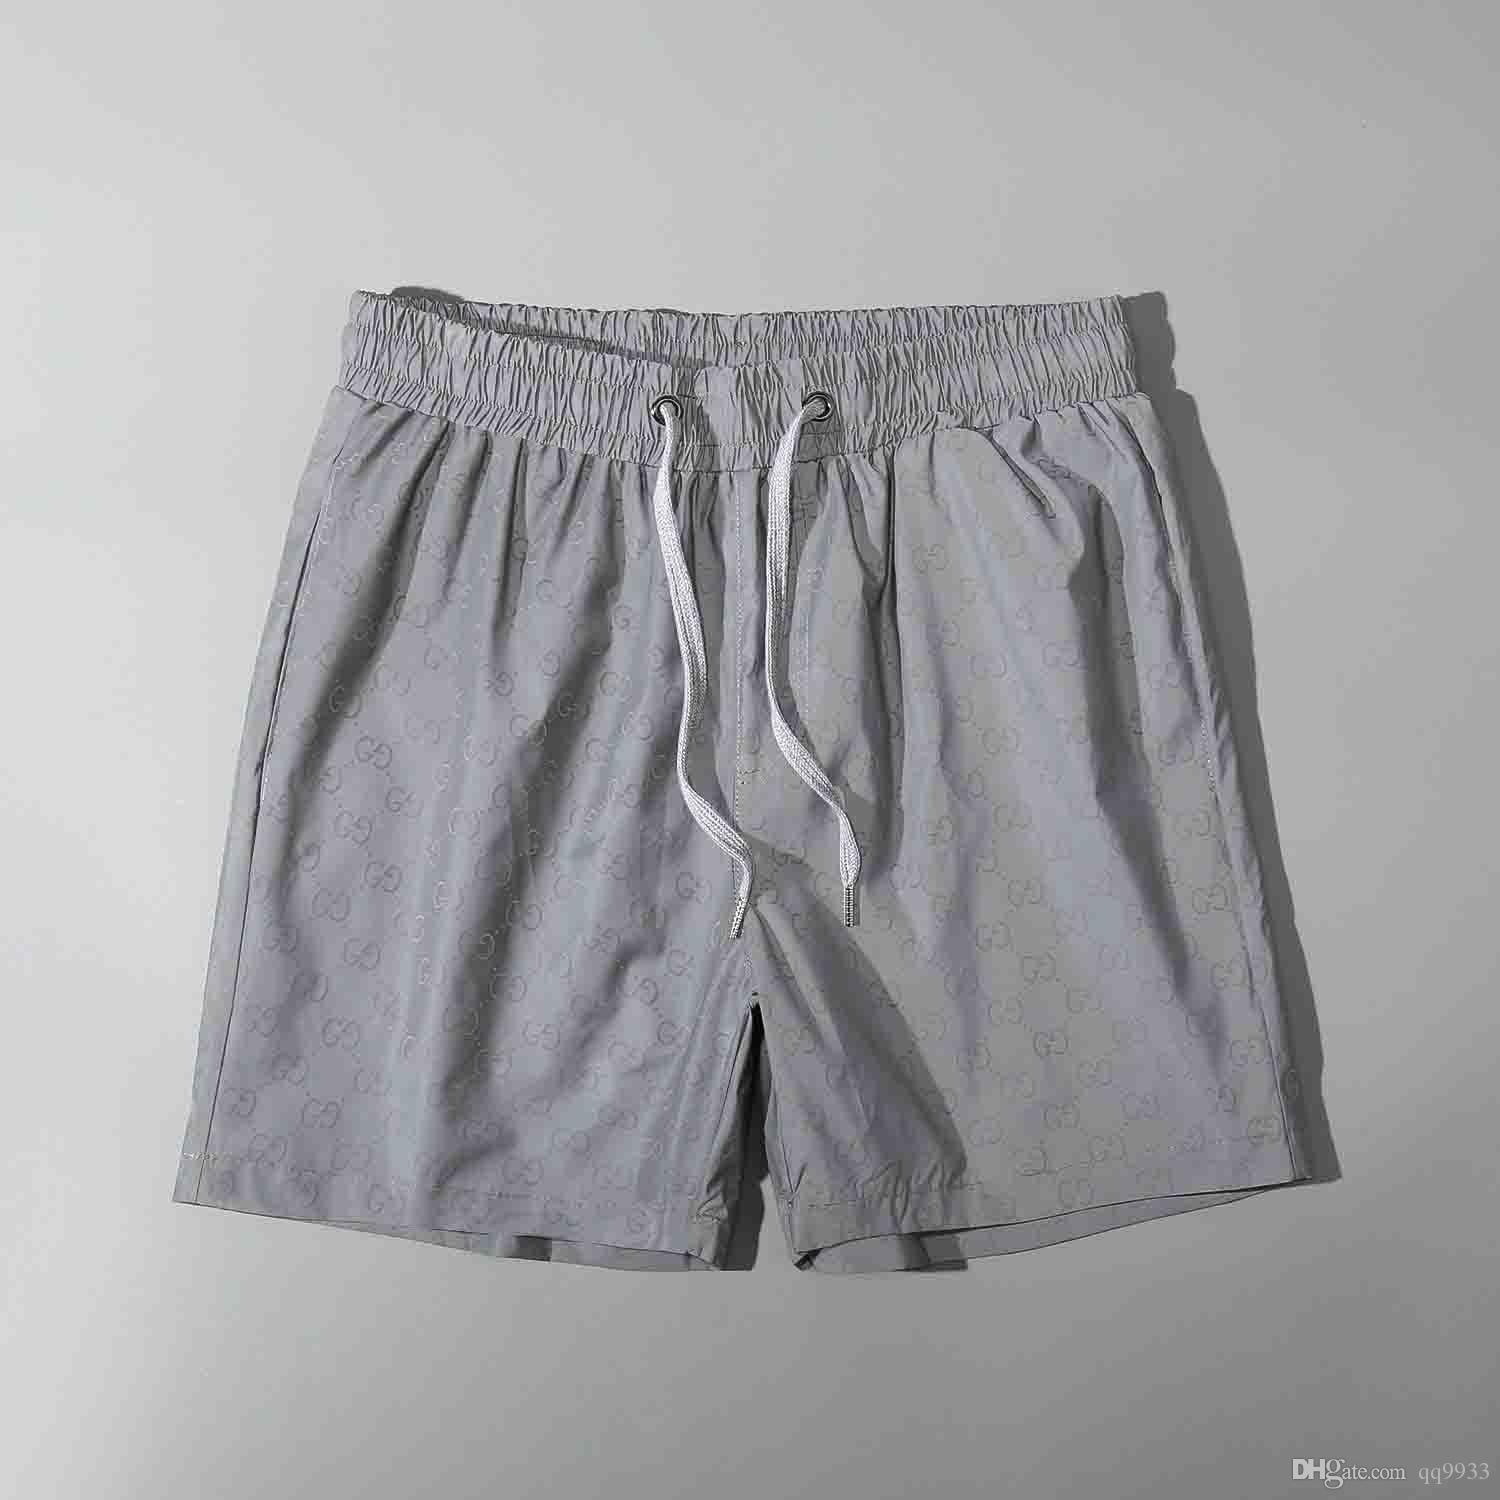 mens designer shorts sale uk